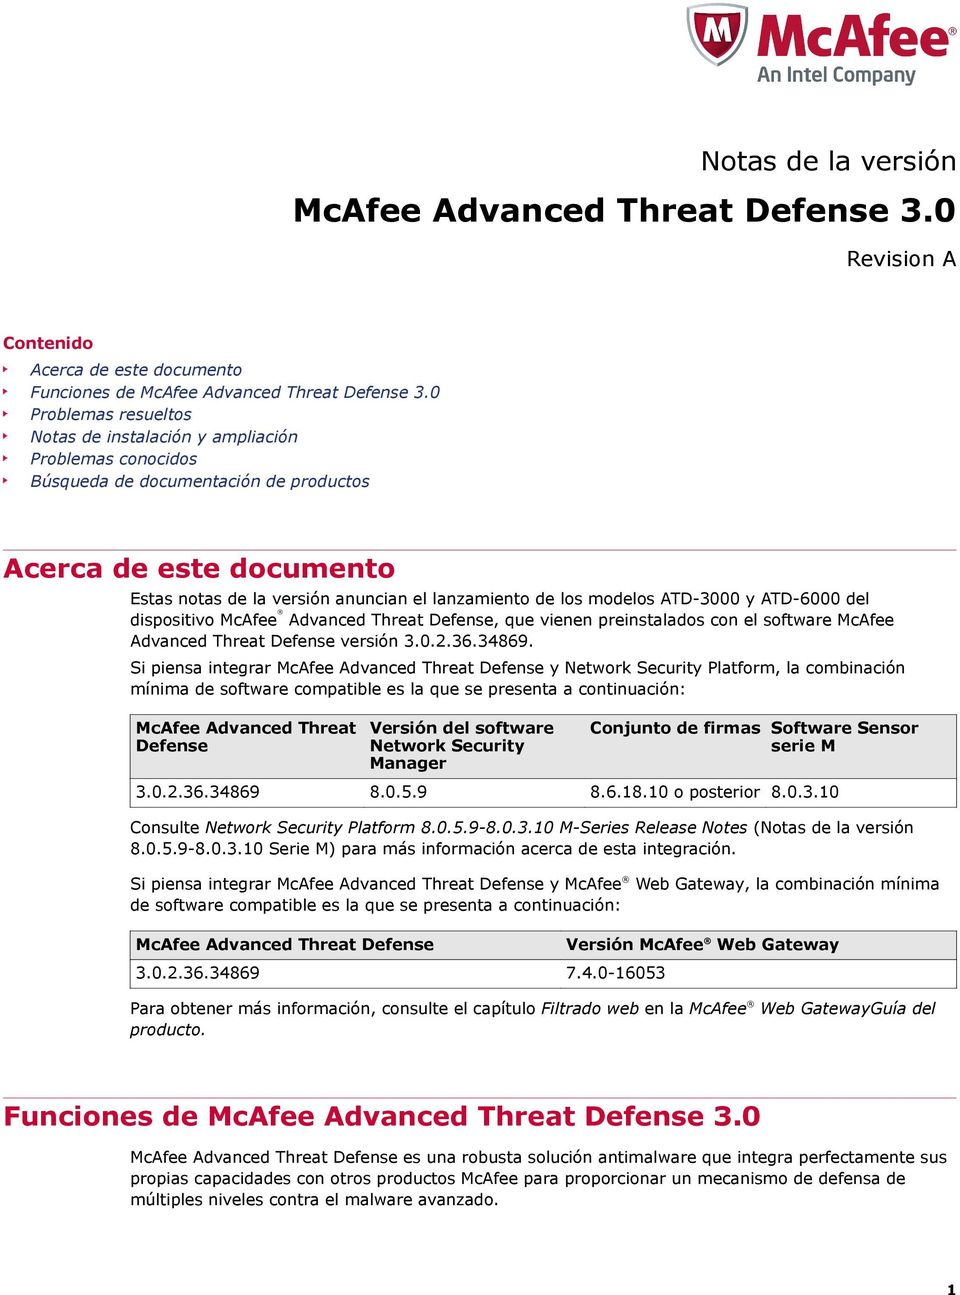 modelos ATD-3000 y ATD-6000 del dispositivo McAfee Advanced Threat Defense, que vienen preinstalados con el software McAfee Advanced Threat Defense versión 3.0.2.36.34869.